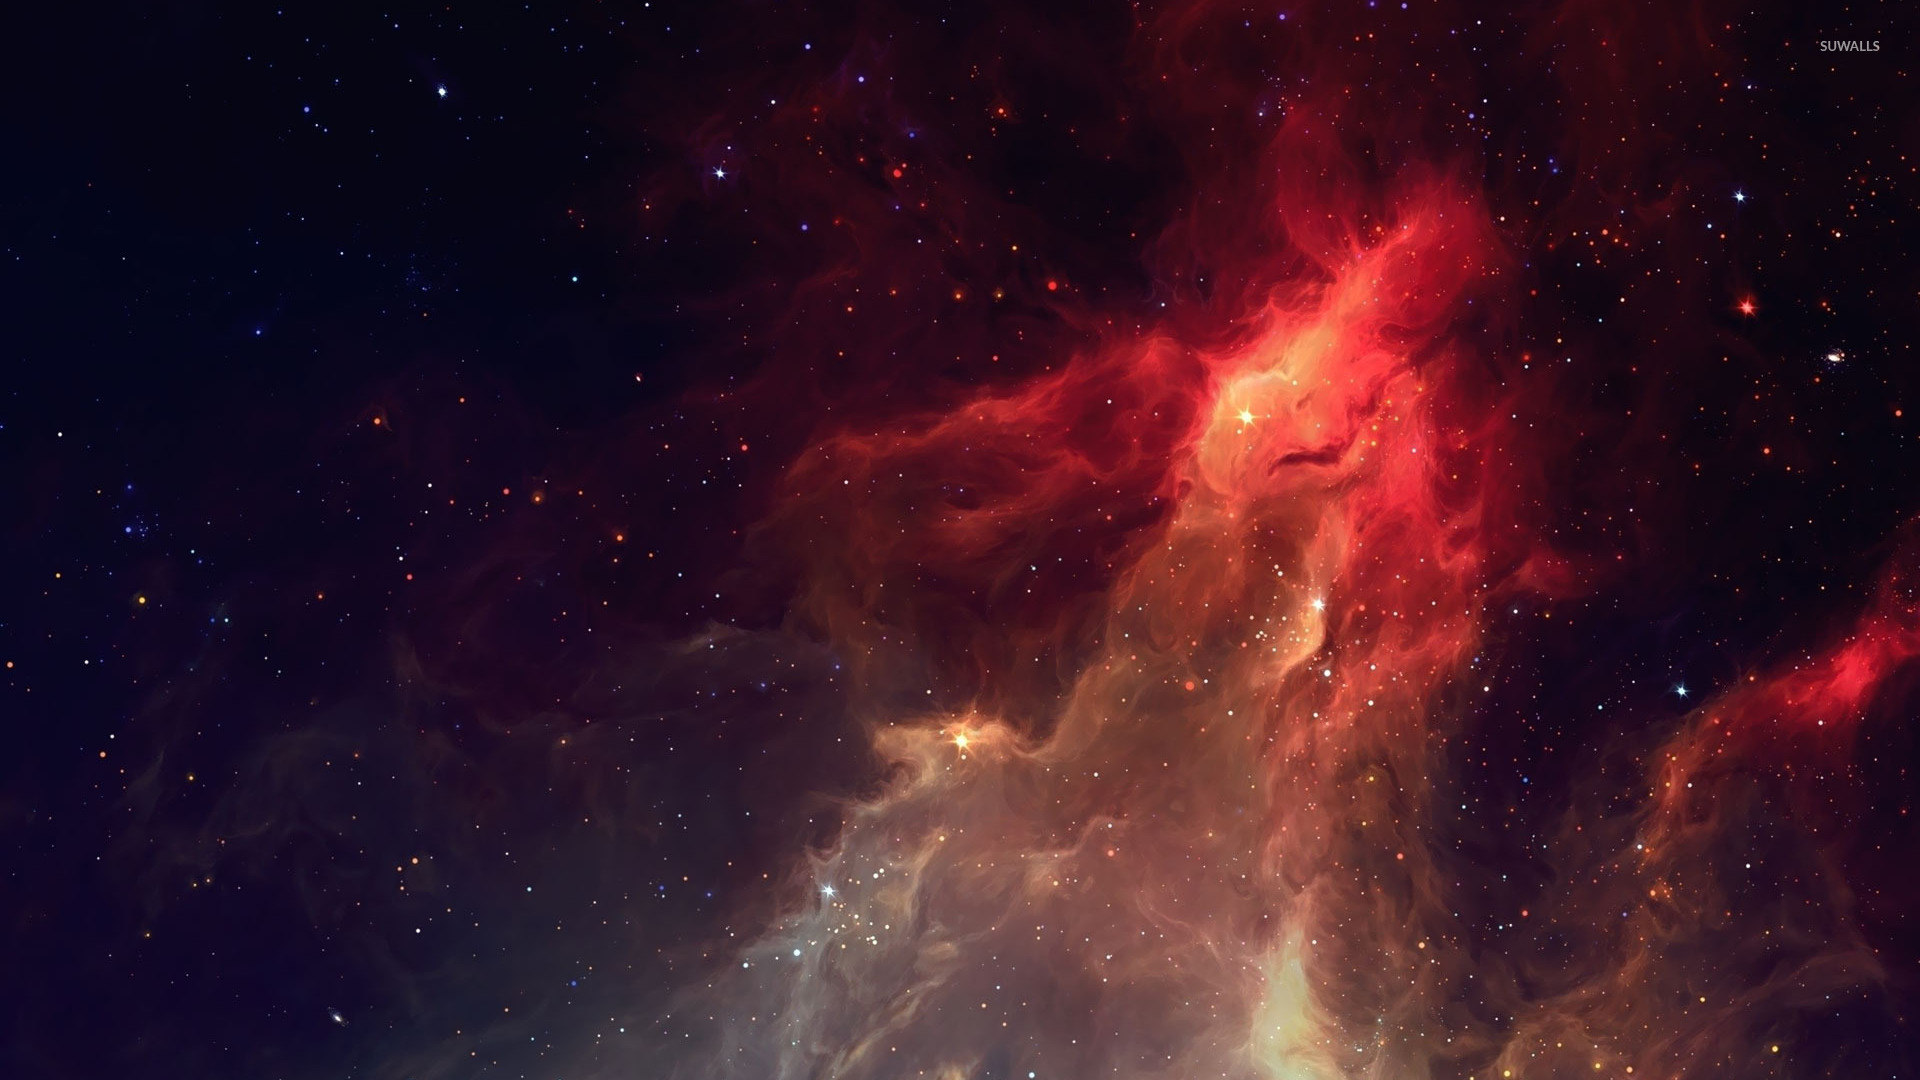 Nebula [11] wallpaper - Space wallpapers - #18604